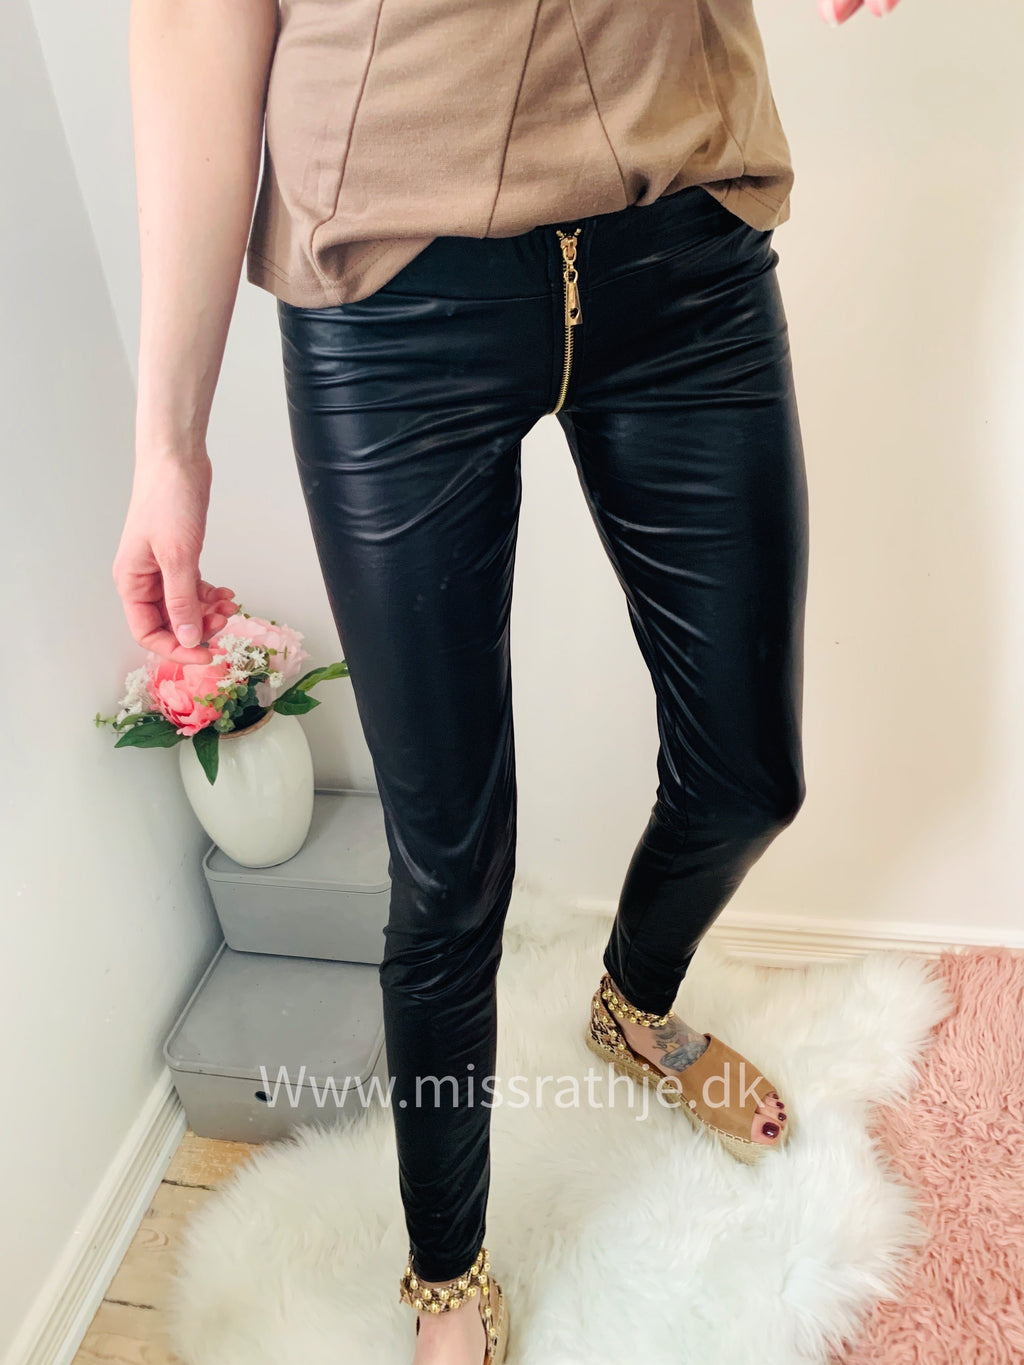 Leonora - Wet look leggins - Sort Str.34-40